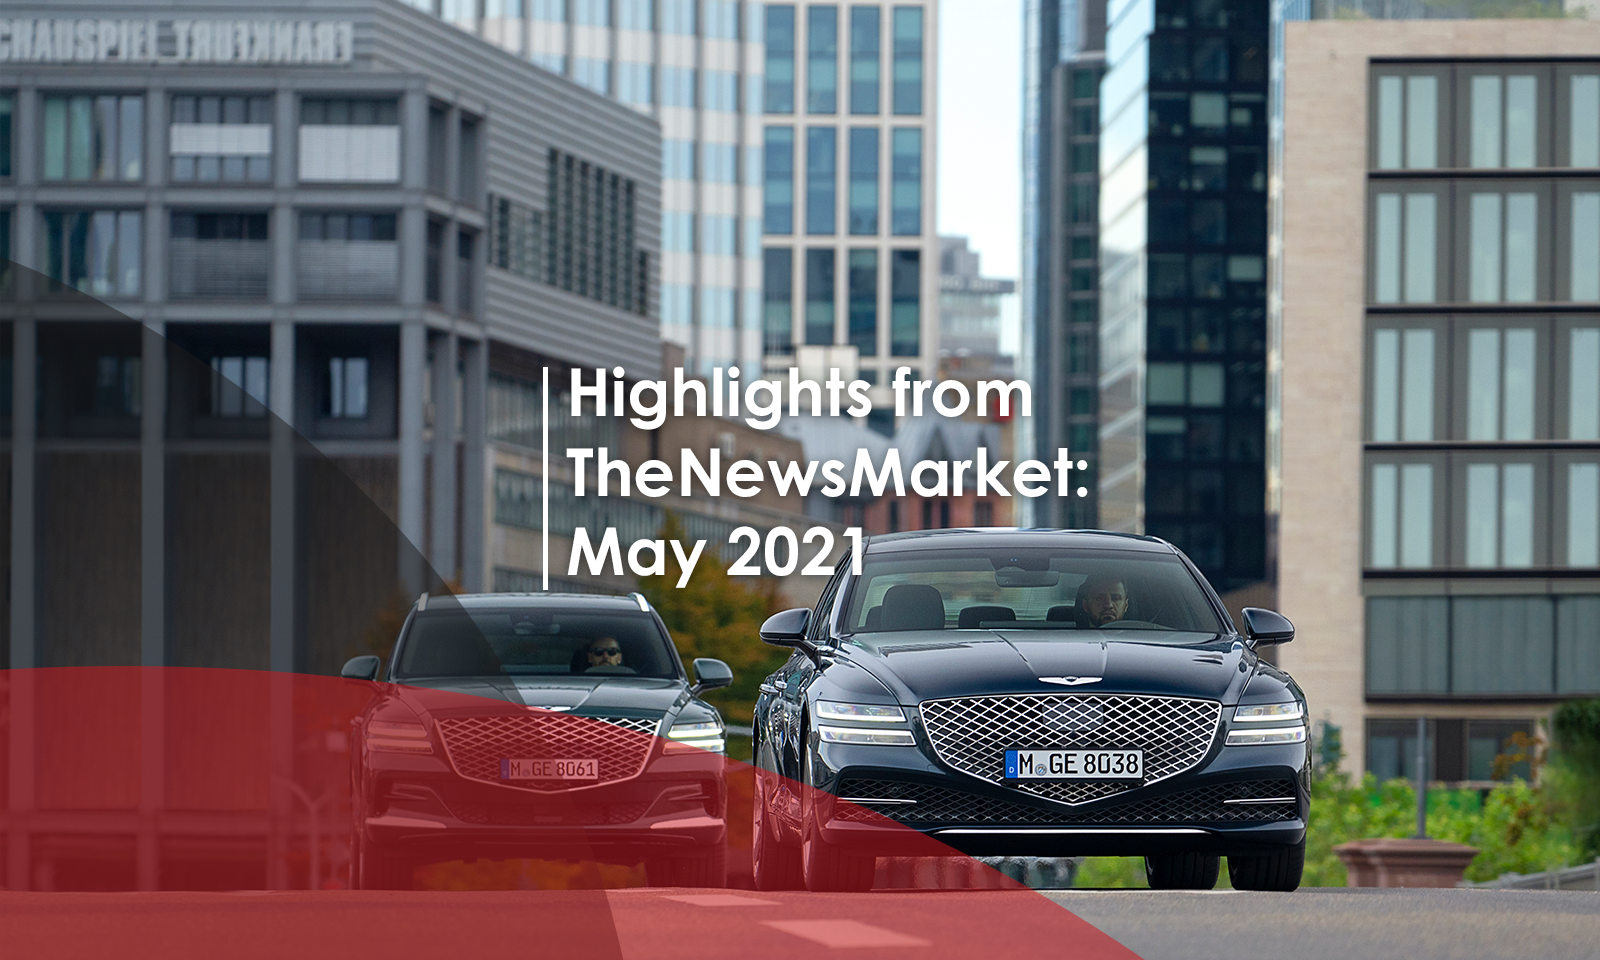 Highlights from TheNewsMarket: May 2021